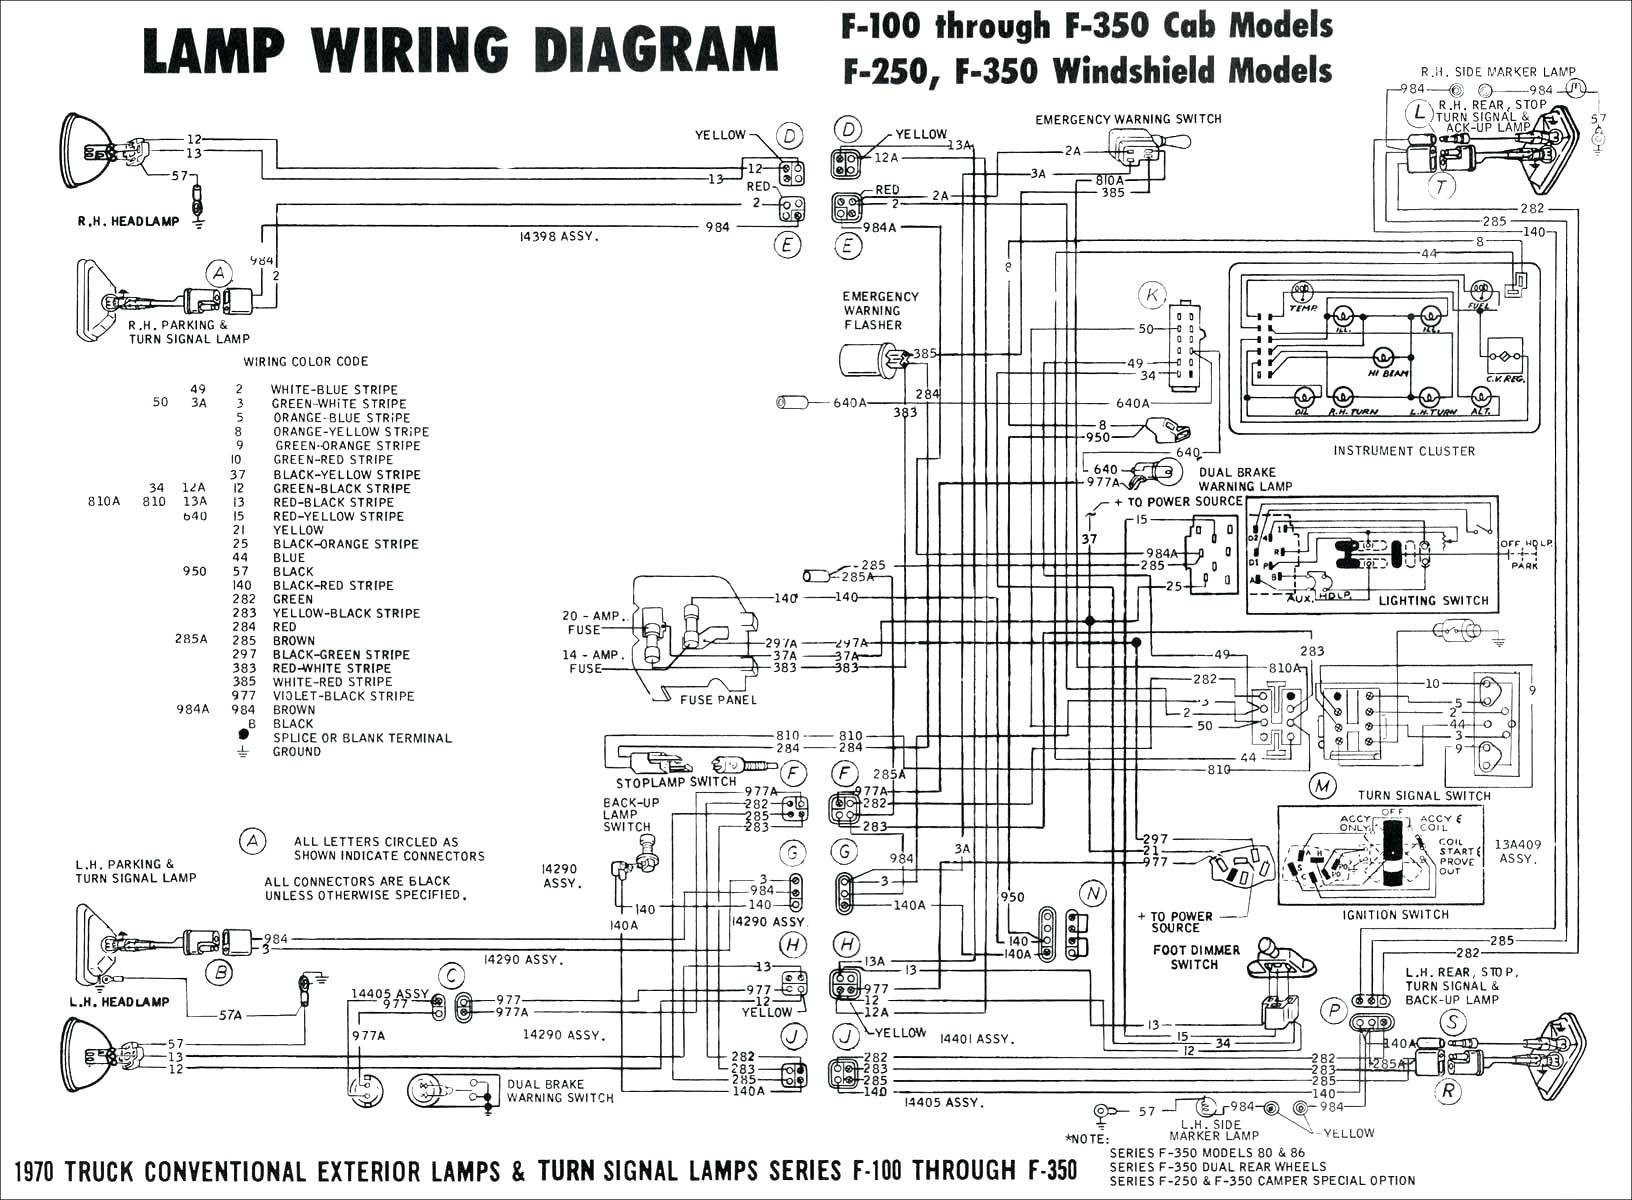 33 headlight socket wiring diagram